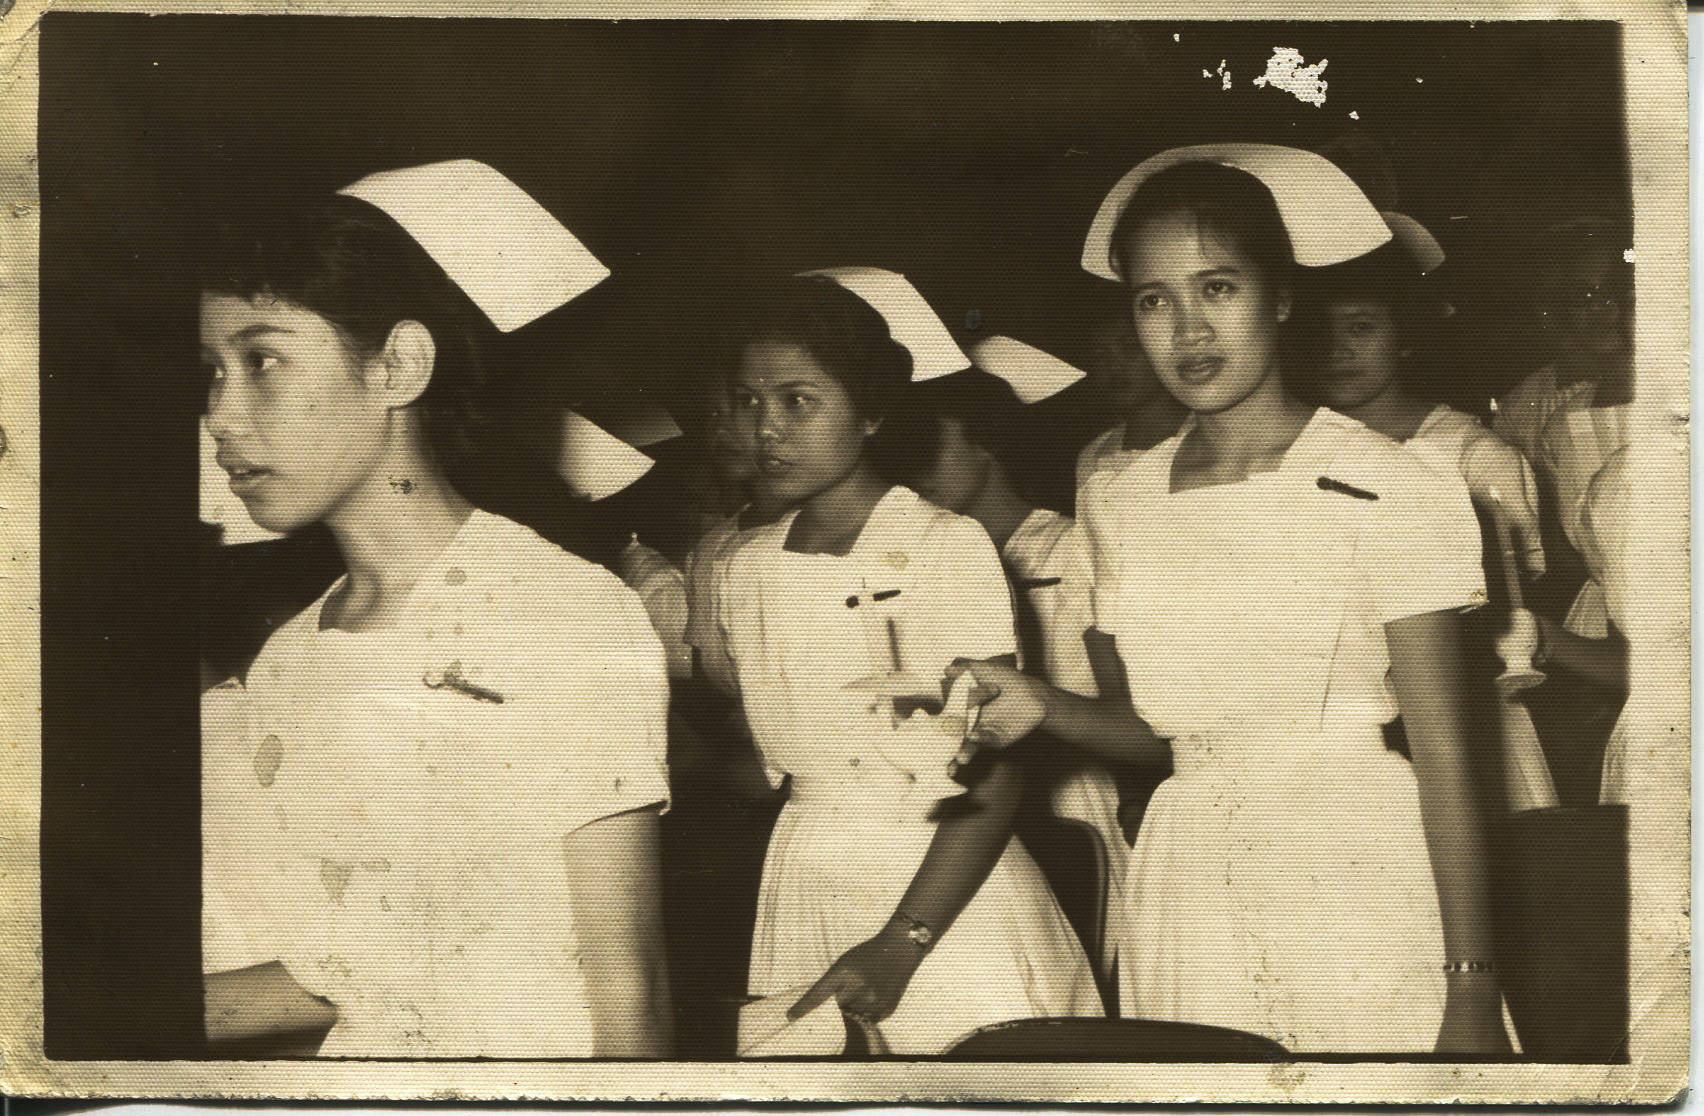 """Photo of Tan's graduation, 1963 - front Taken in 1963 at a graduation from Florence Nightingale at Philippine General Hospital. The back says """"Please return to Necitas D. Tan class of 1963"""". The photo shows Agnes Bandon (a friend of Tan's - Bandon is her maiden name); Necitas; and Gaying Dime (a friend of Tan's). Tan said, """"My life started. I was meant to be a nurse"""". Tan started school majoring in chemical engineering.   Any views, findings, conclusions, or recommendations expressed in this story do not necessarily represent those of the National Endowment for the Humanities. [Copyright] Field Museum of Natural History - CC BY-NC"""